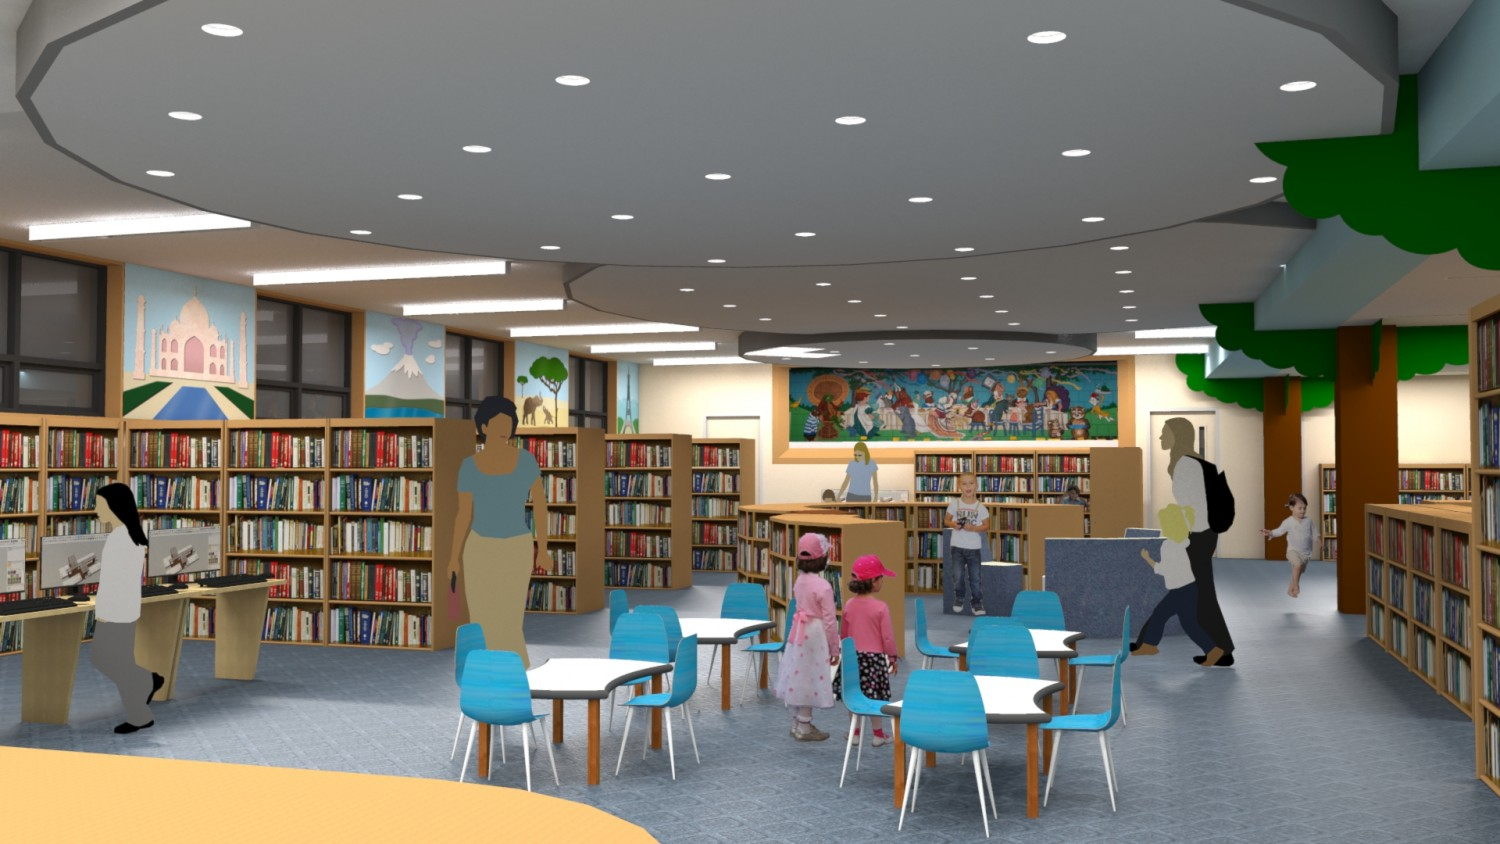 Rendering of future childrens' room